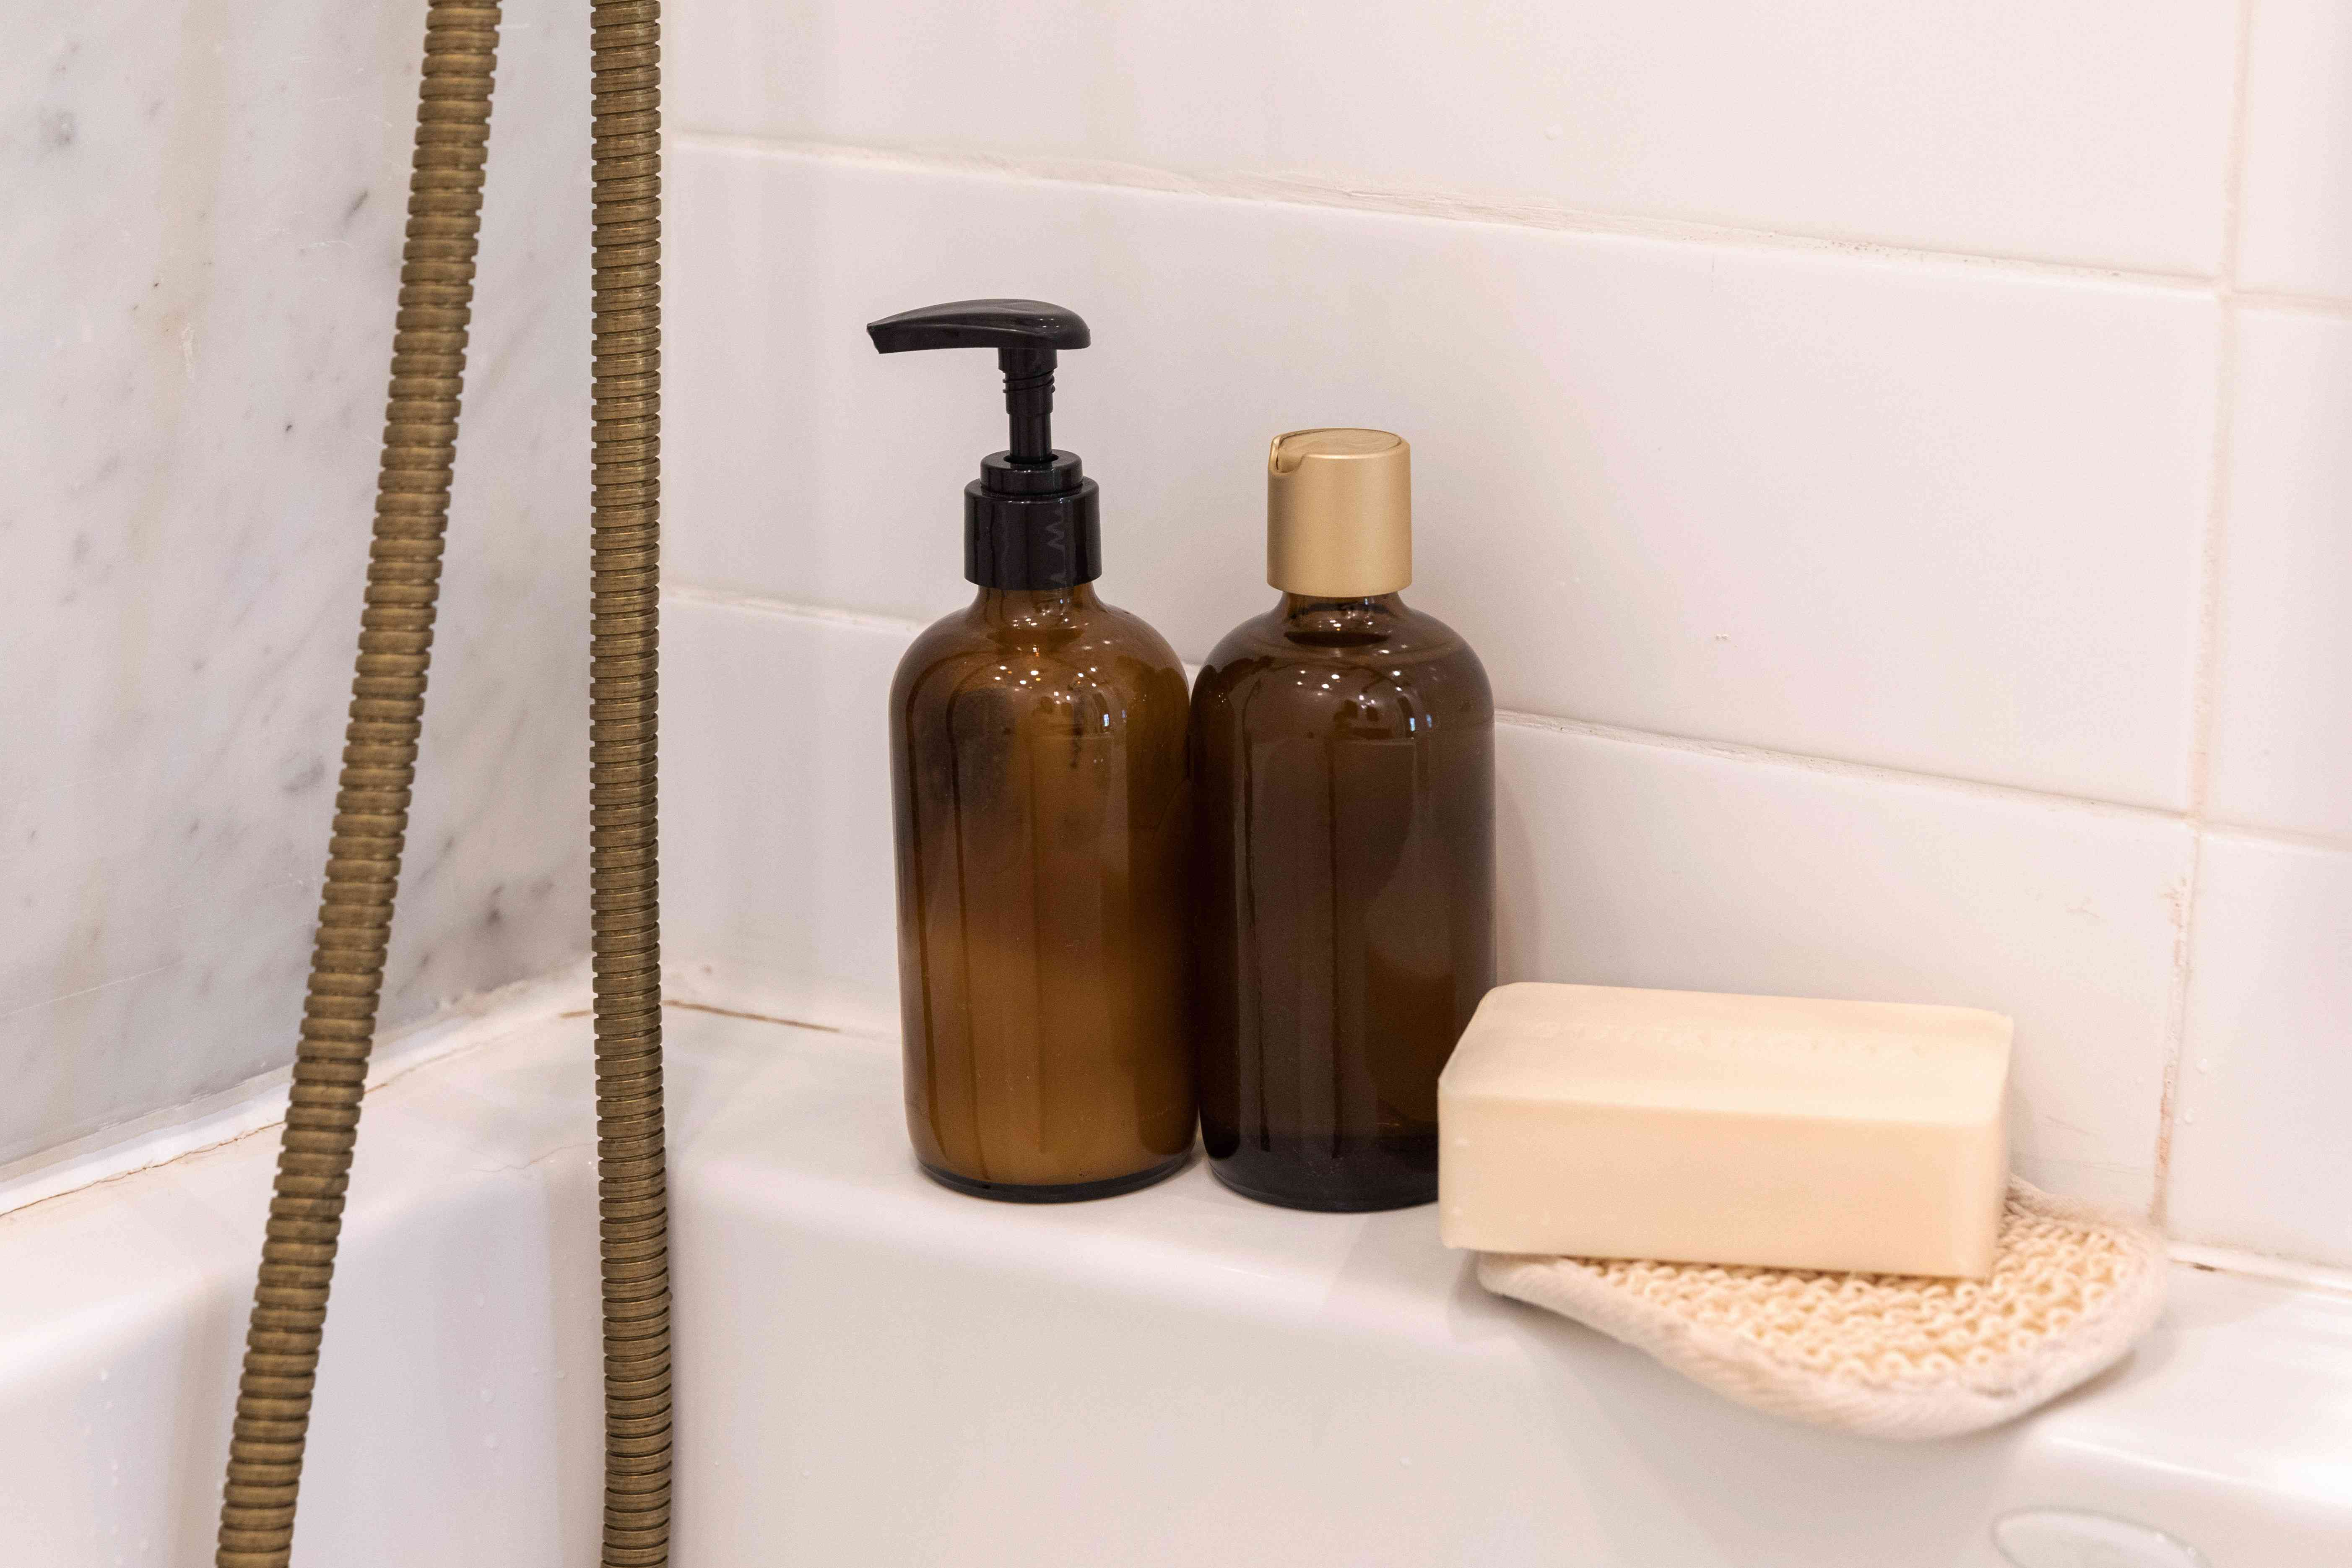 keeping frequently used shower items close by